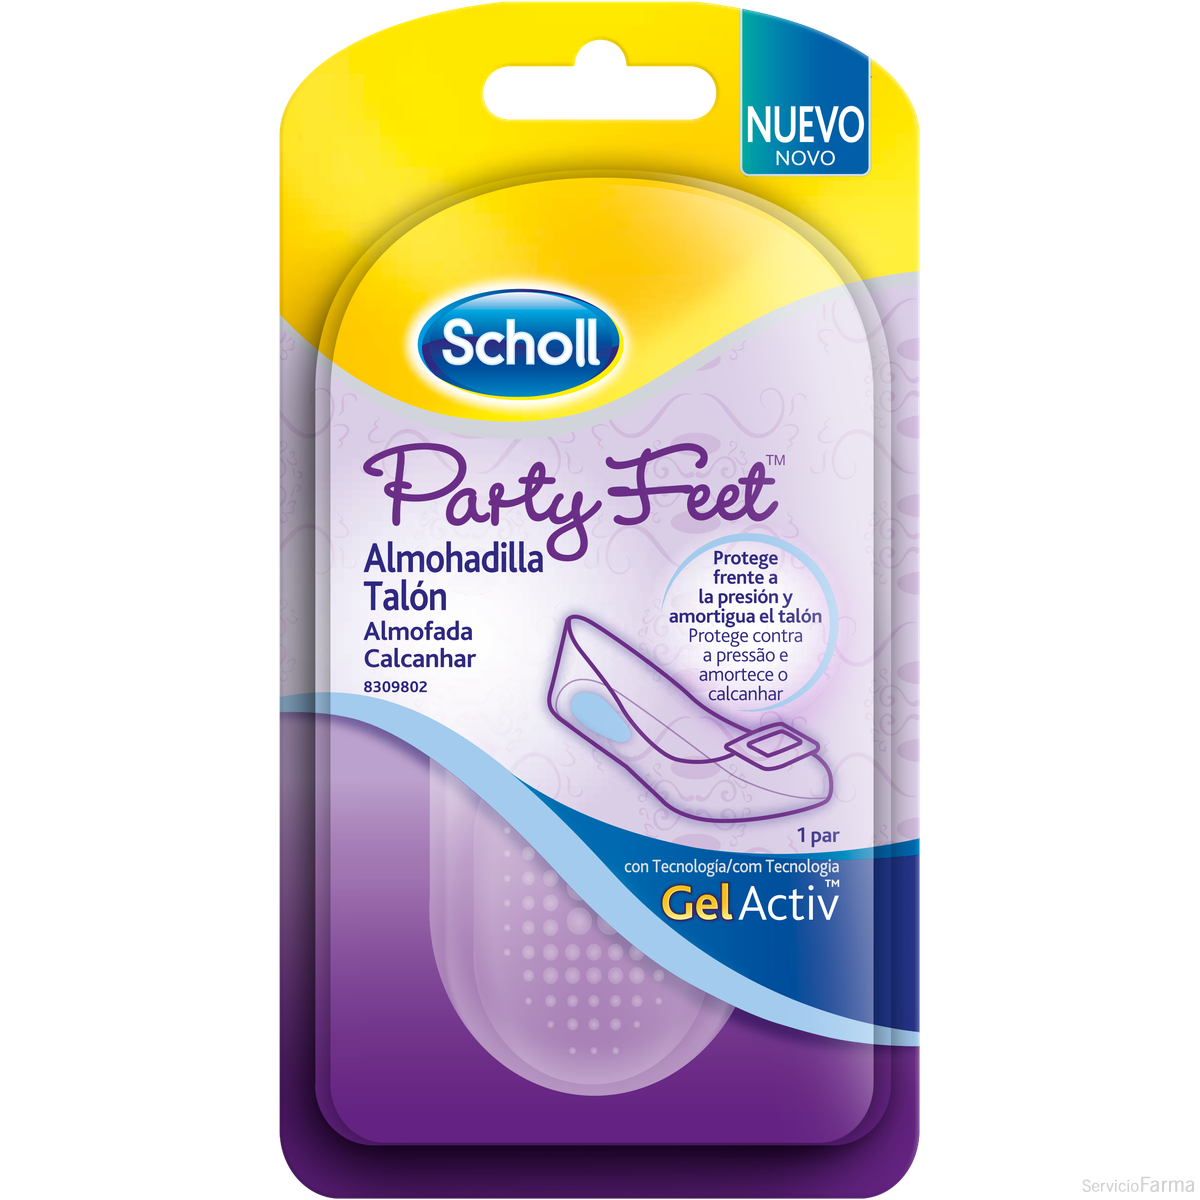 Party Feet / Almohadilla talón Gel Activ - Scholl (1 par)